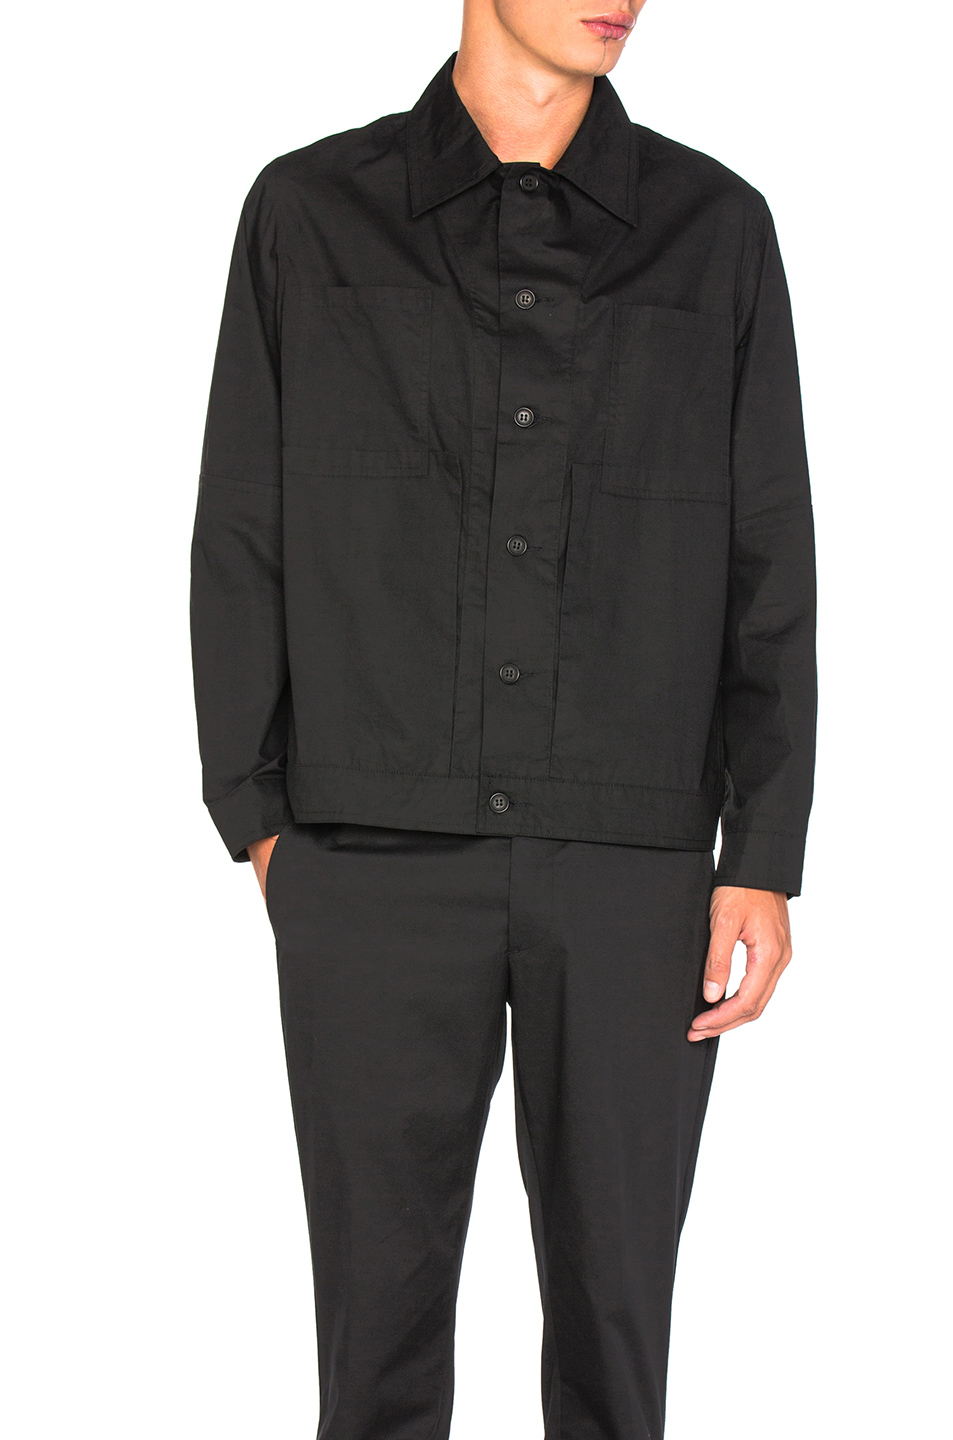 Craig Green Cotton Work Jacket in Black